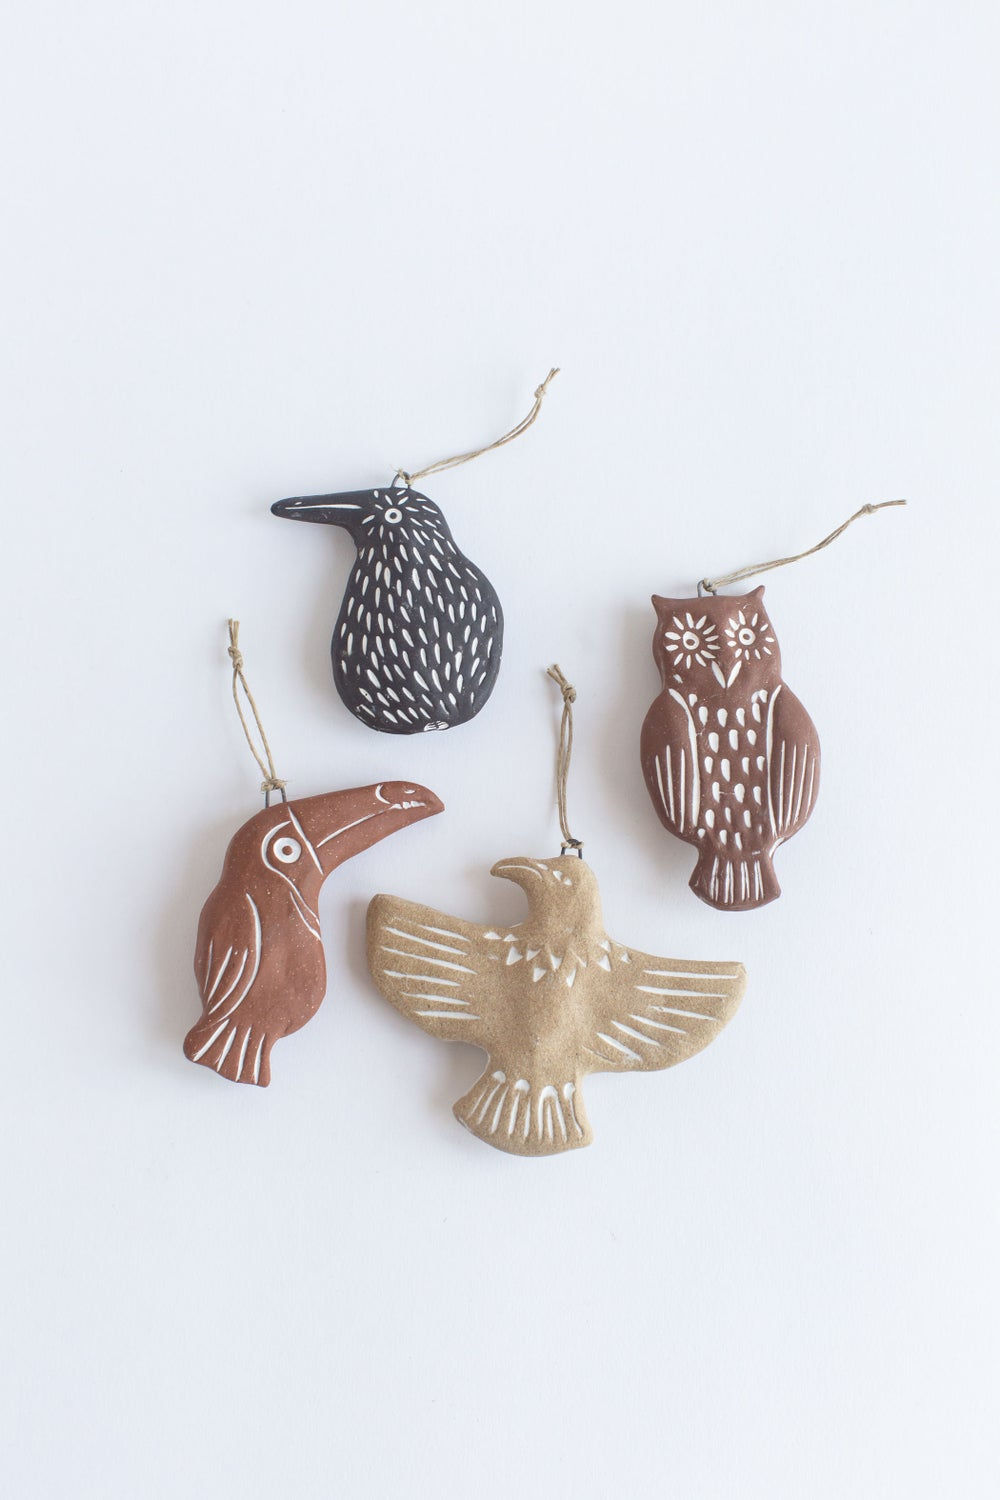 Image of BIRD ORNAMENTS